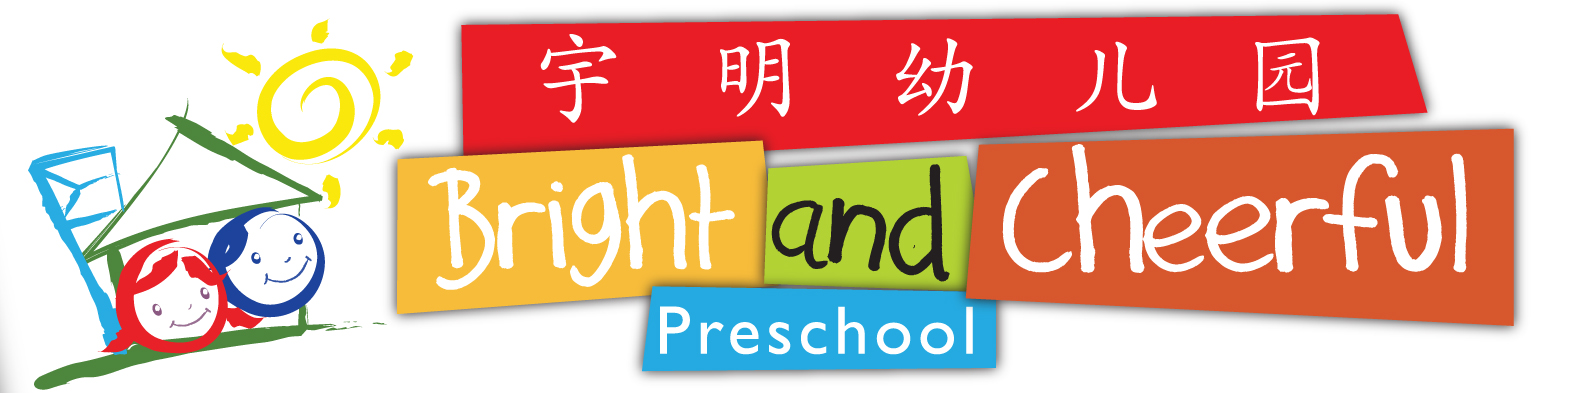 Bright and Cheerful Preschool